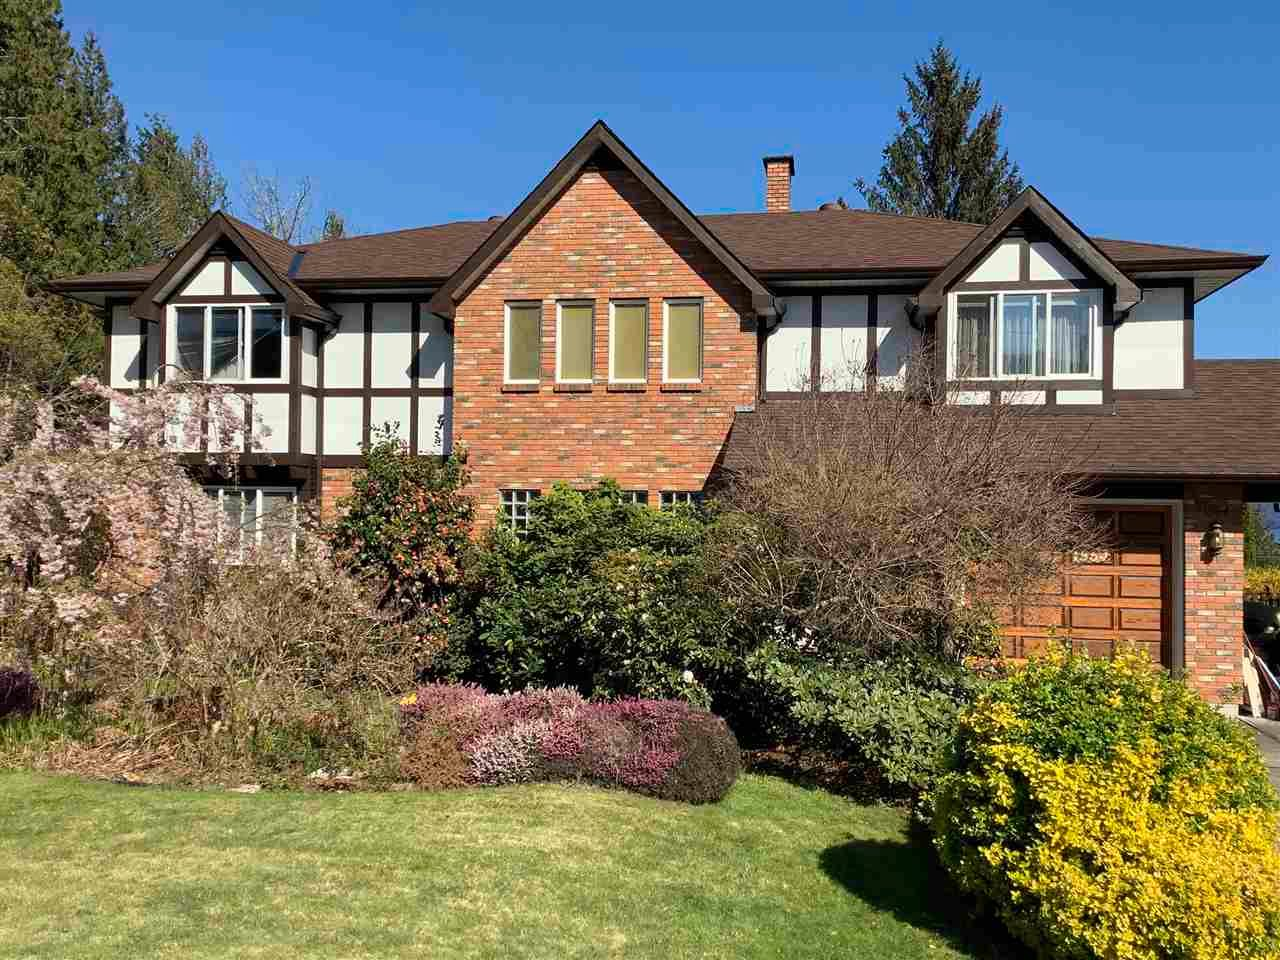 Main Photo: 1564 THOMPSON Road in Langdale: Gibsons & Area House for sale (Sunshine Coast)  : MLS®# R2571660